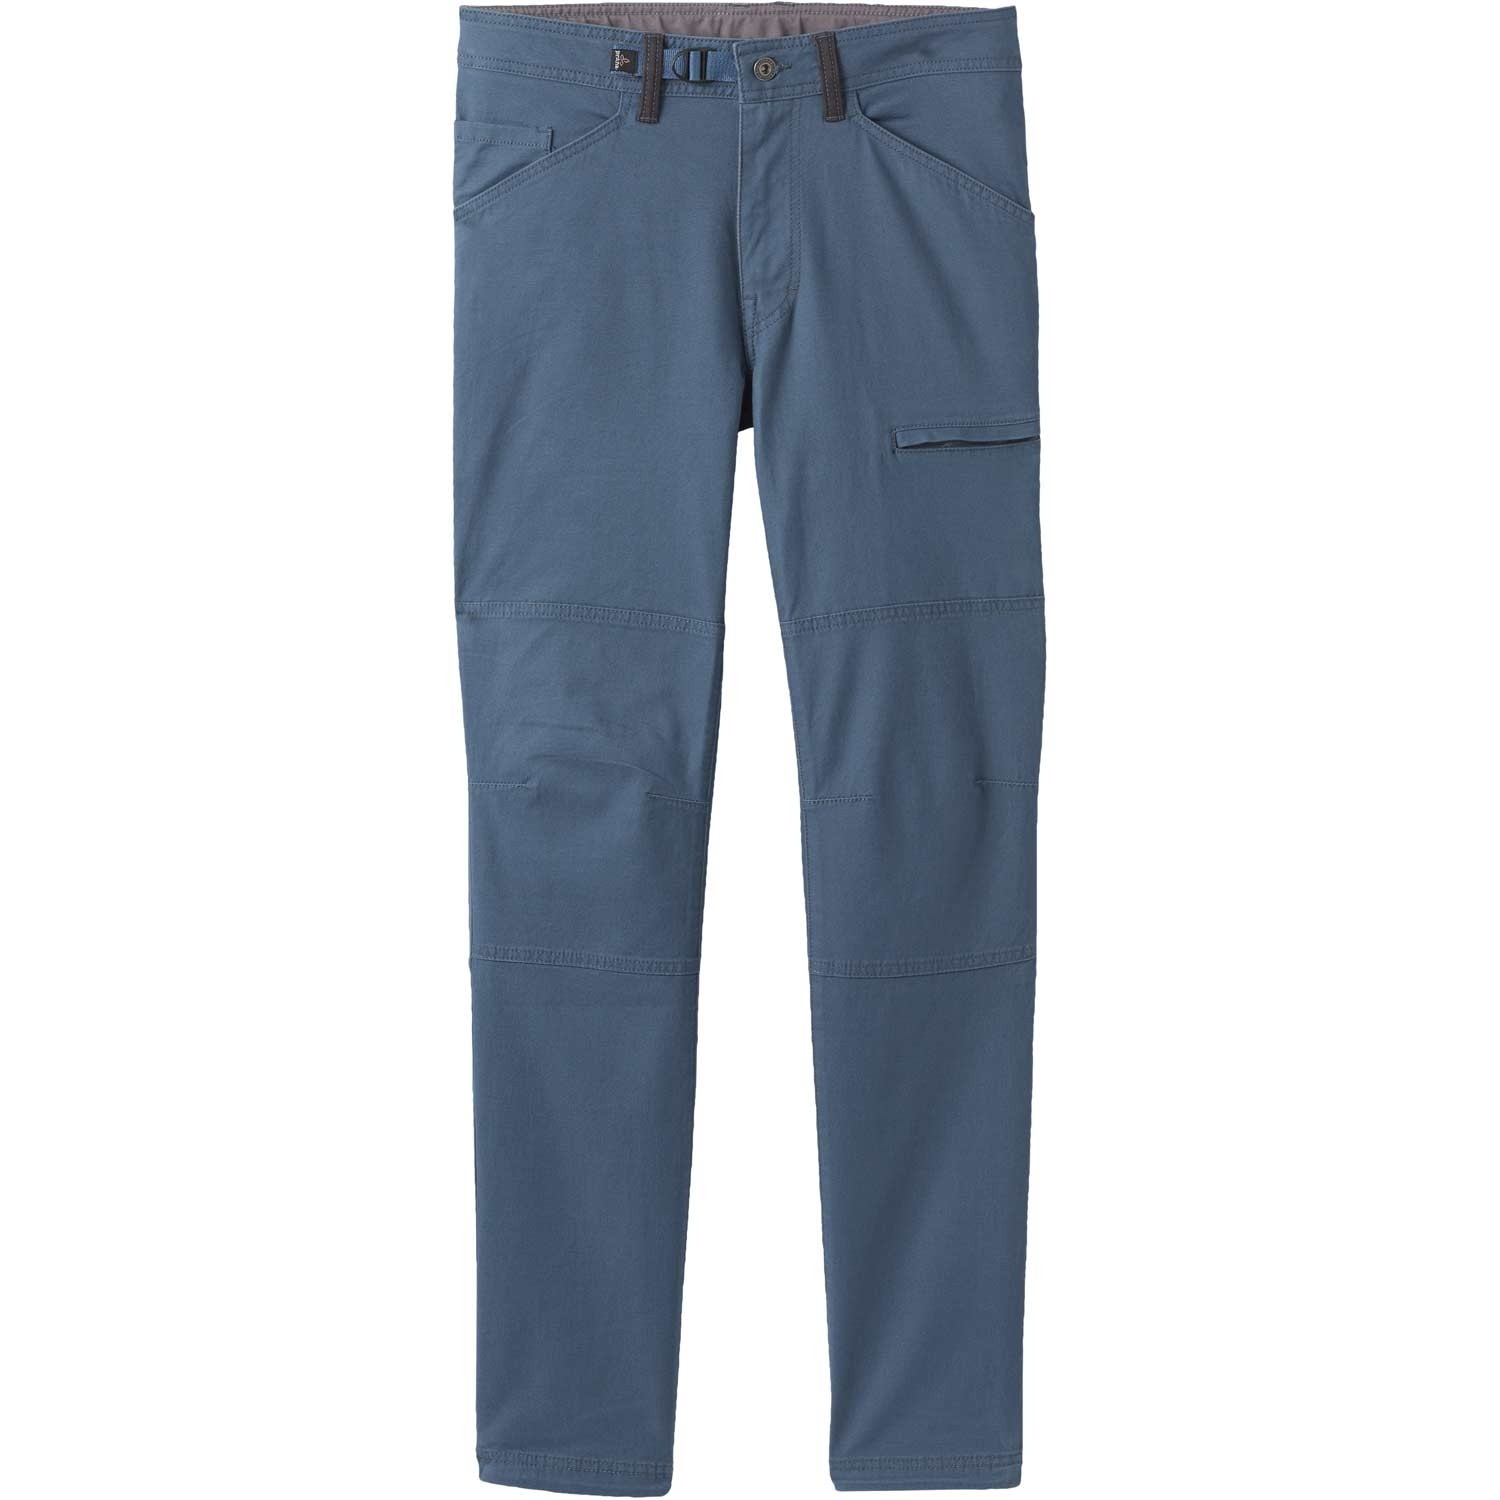 Prana Kragg Pant - Men's - Nickel